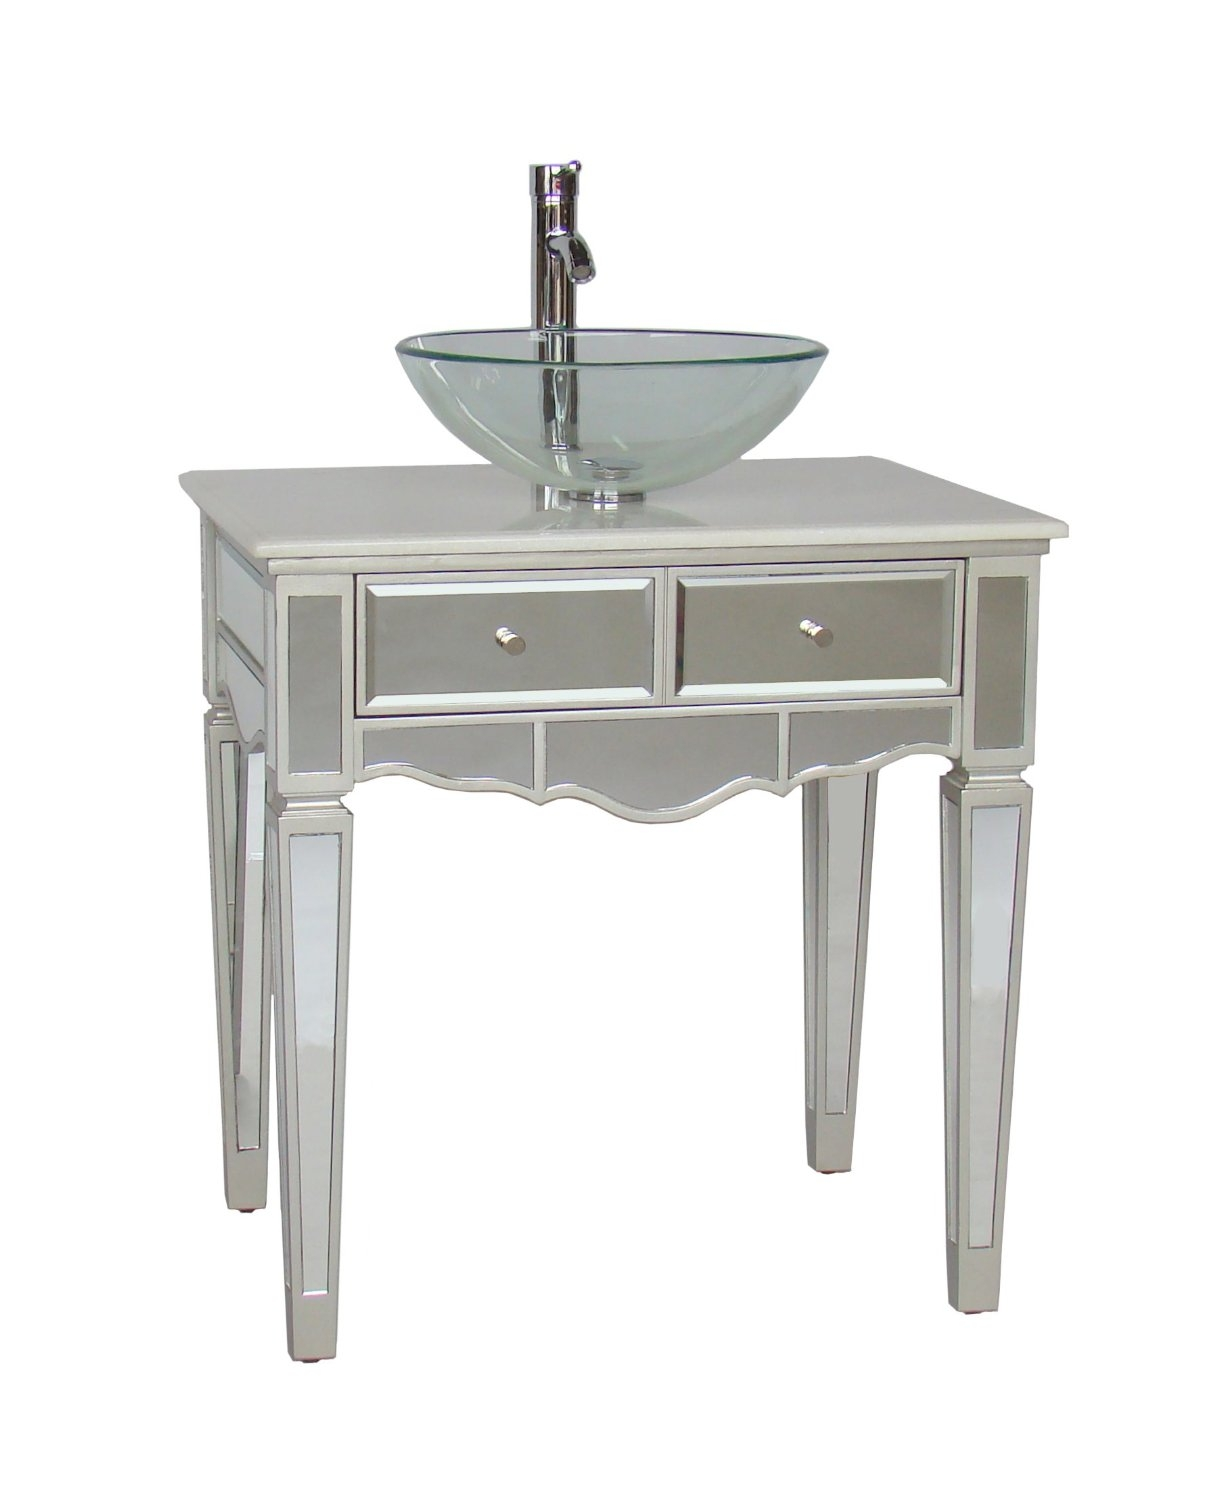 Mirrored Bathroom Vanity With Vessel Sink